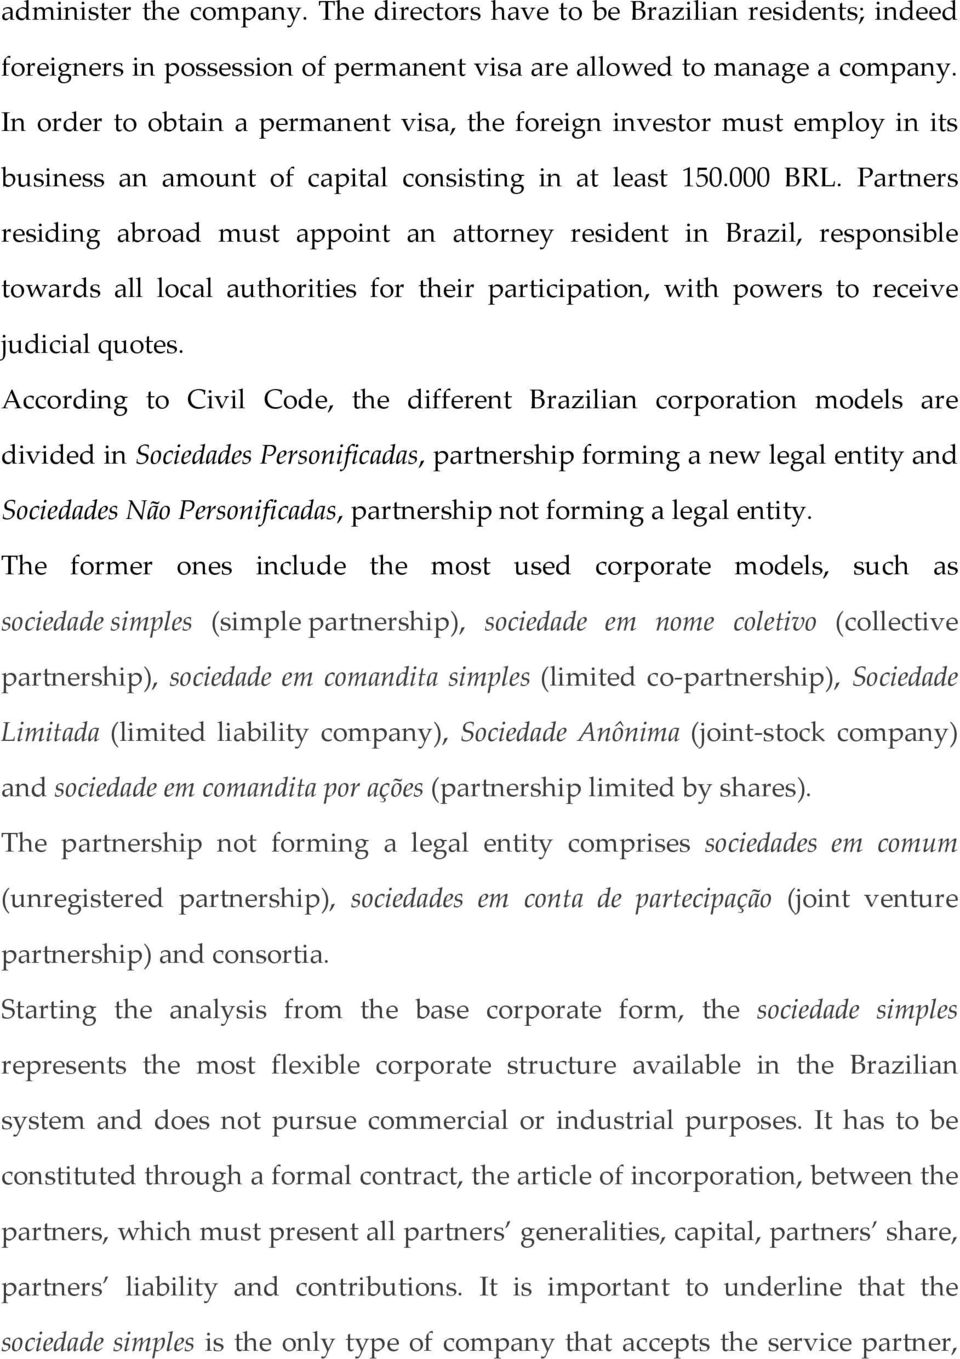 Partners residing abroad must appoint an attorney resident in Brazil, responsible towards all local authorities for their participation, with powers to receive judicial quotes.